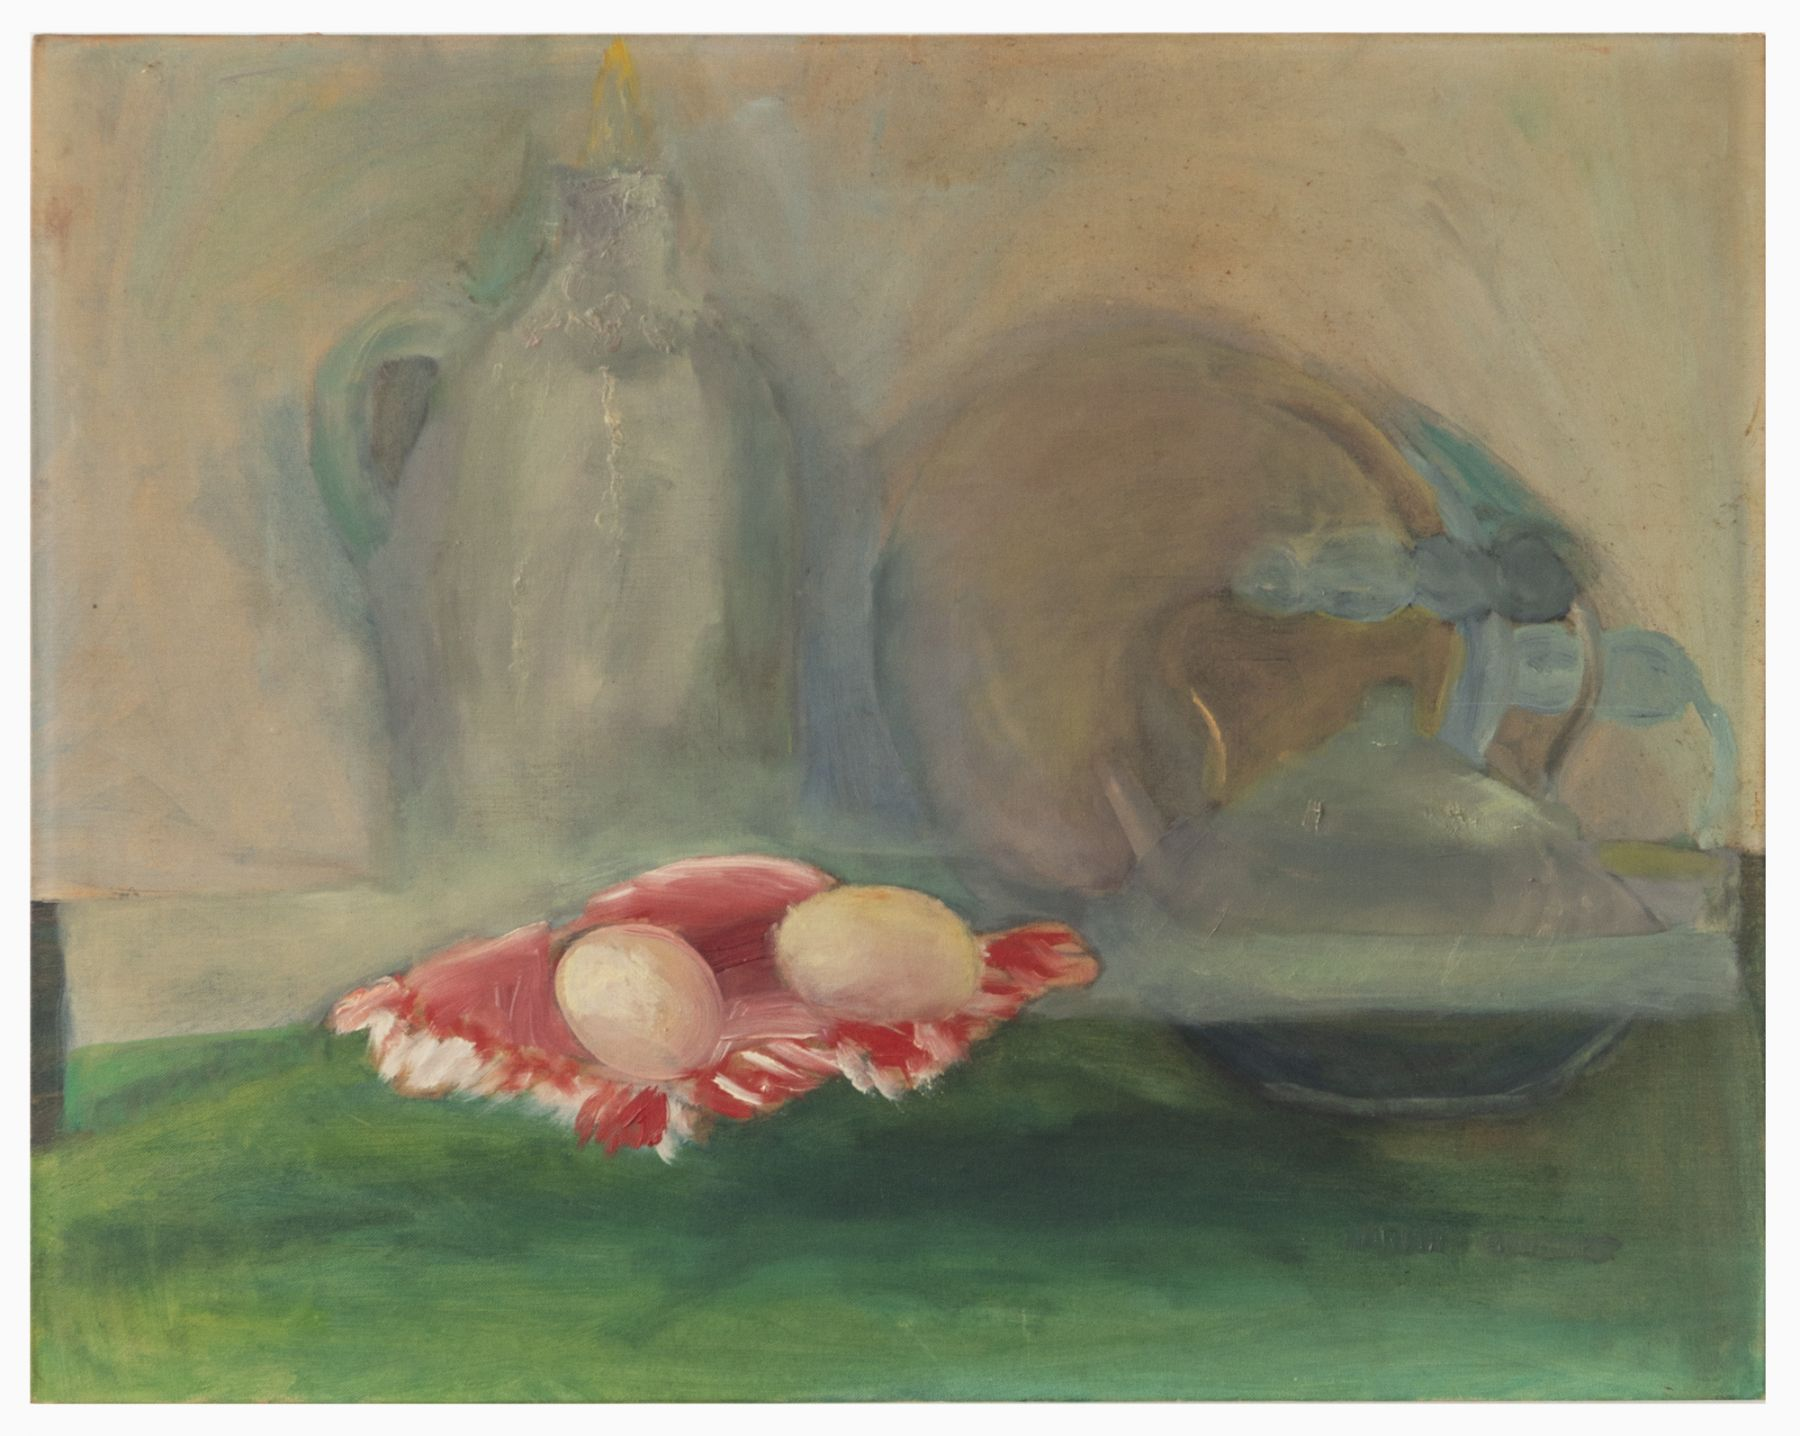 Gedi Sibony, Still Life with Eggs